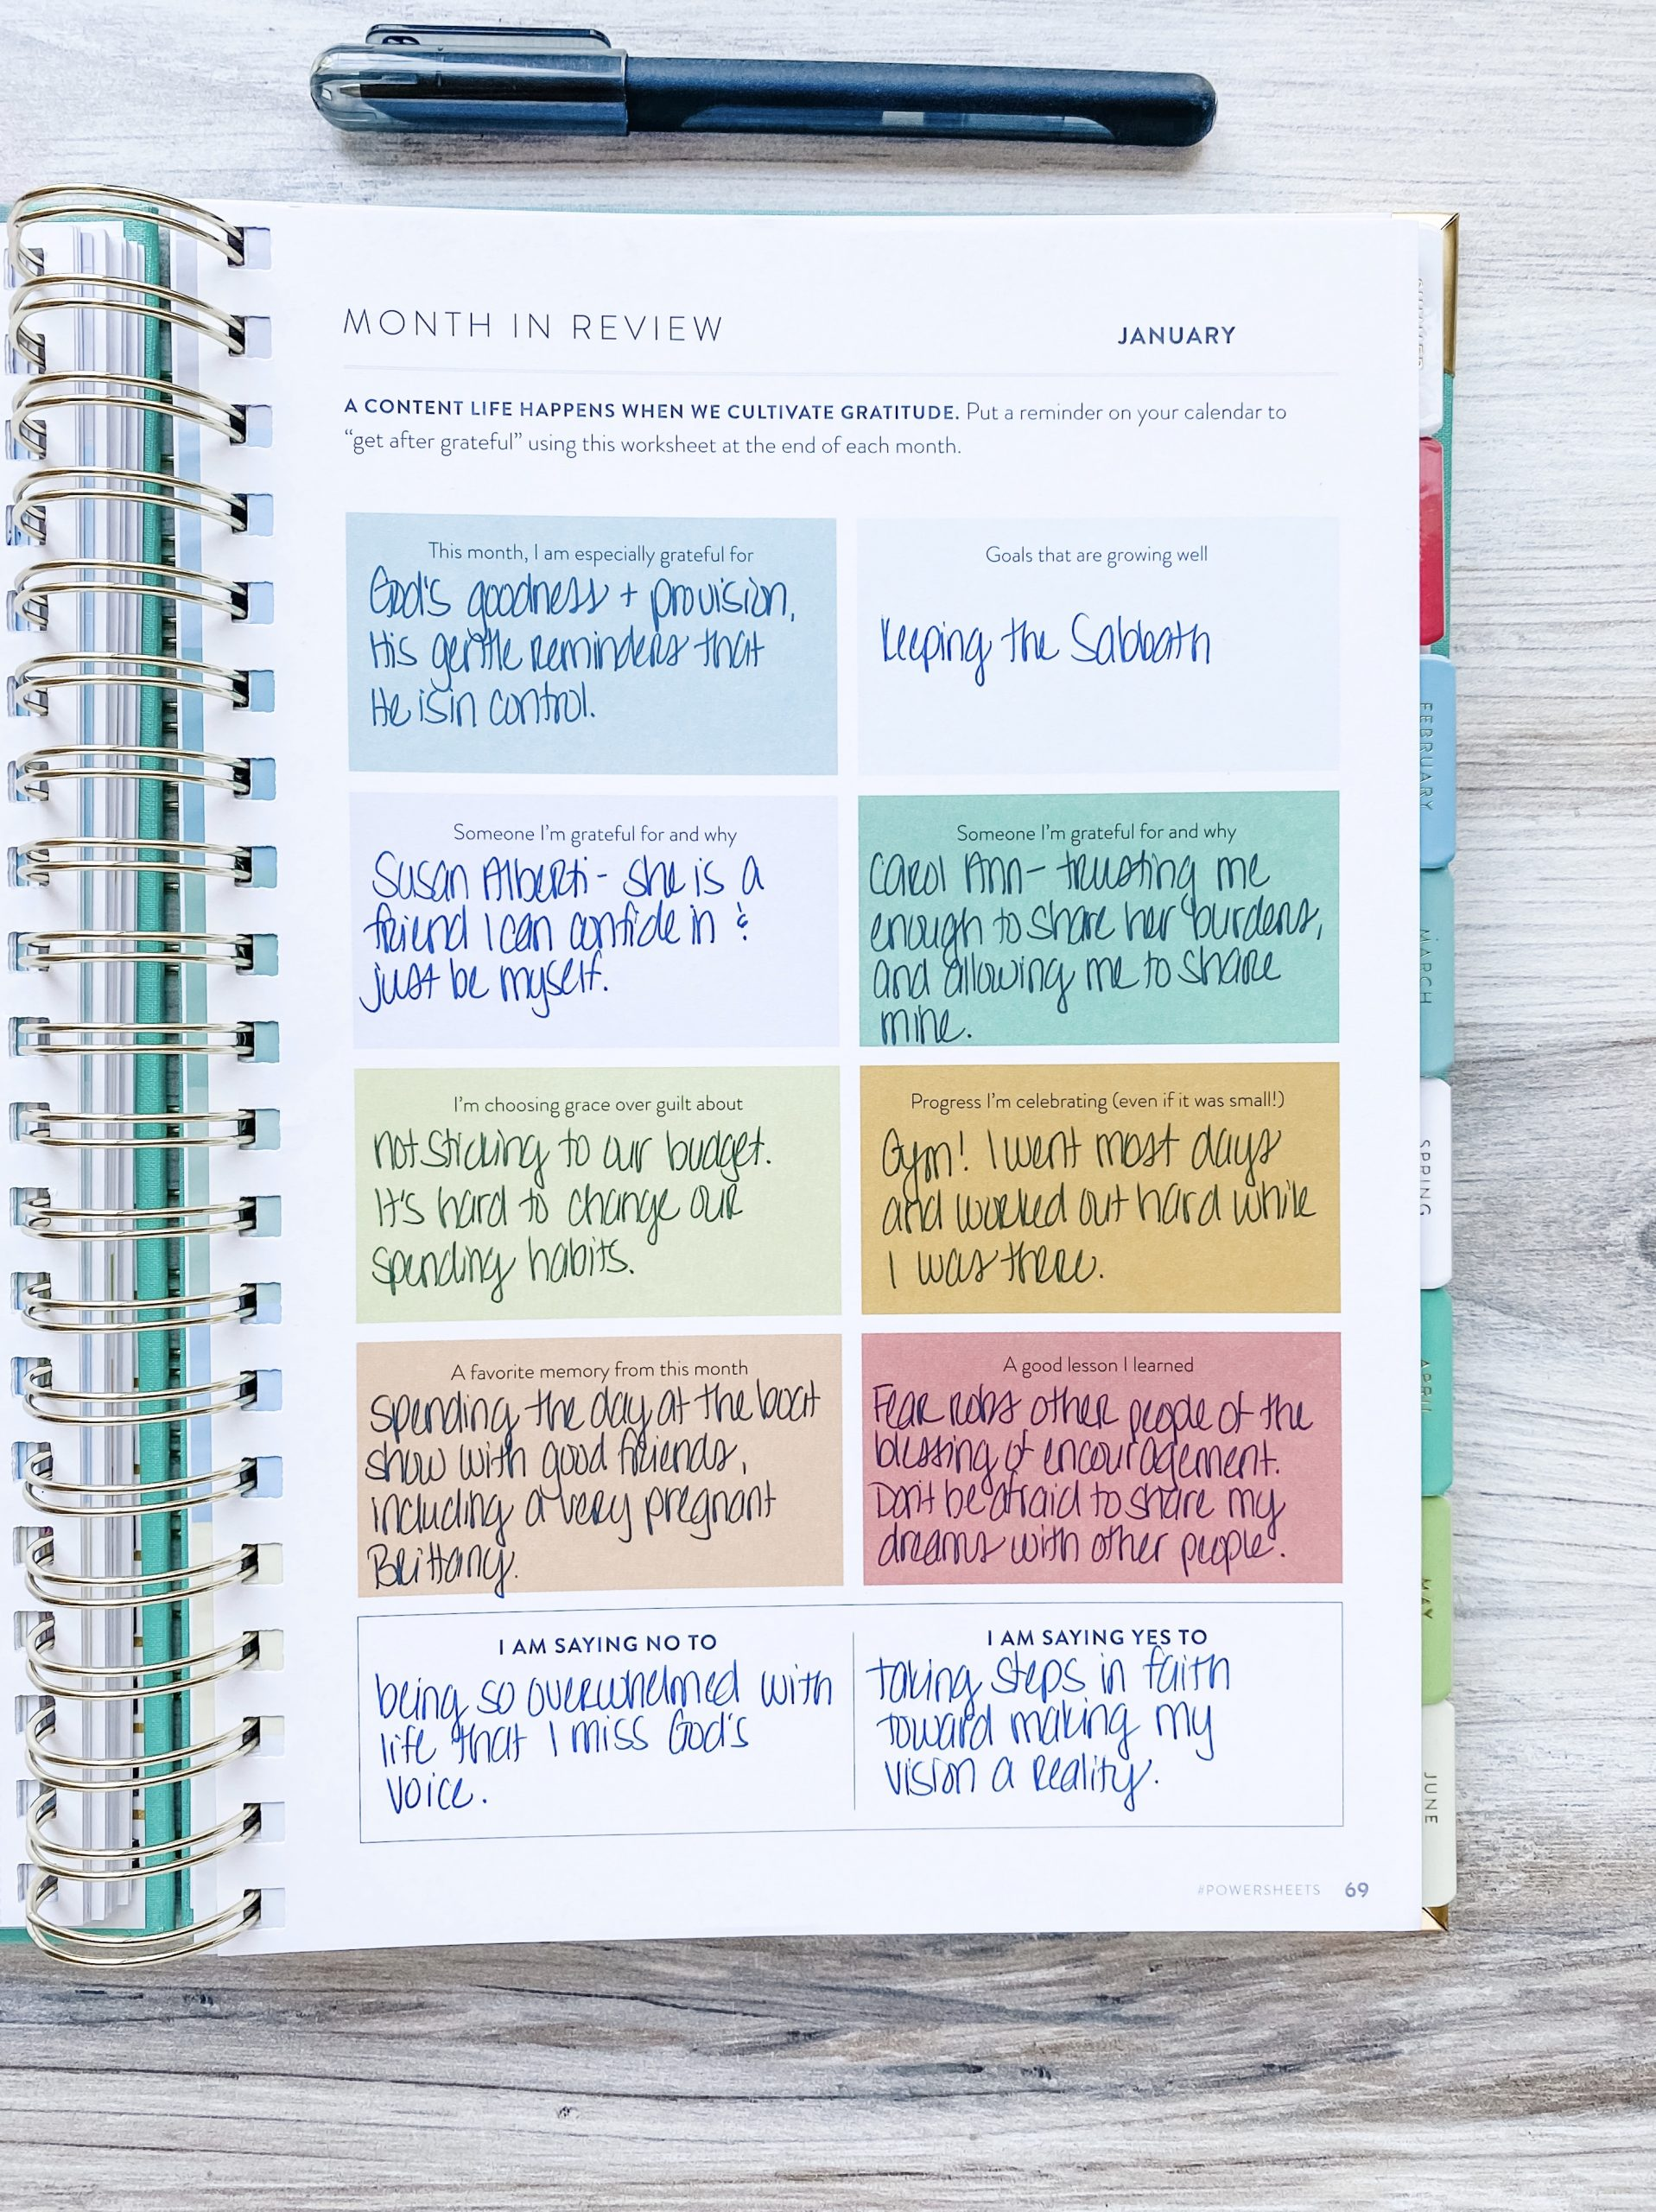 PowerSheets by Cultivate What Matters are a game-changer for my goals. I'm on my 8th set, and can tell you from experience that they work! Check out my progress on my January 2020 Tending List, and see my goals on the February 2020 Tending List.